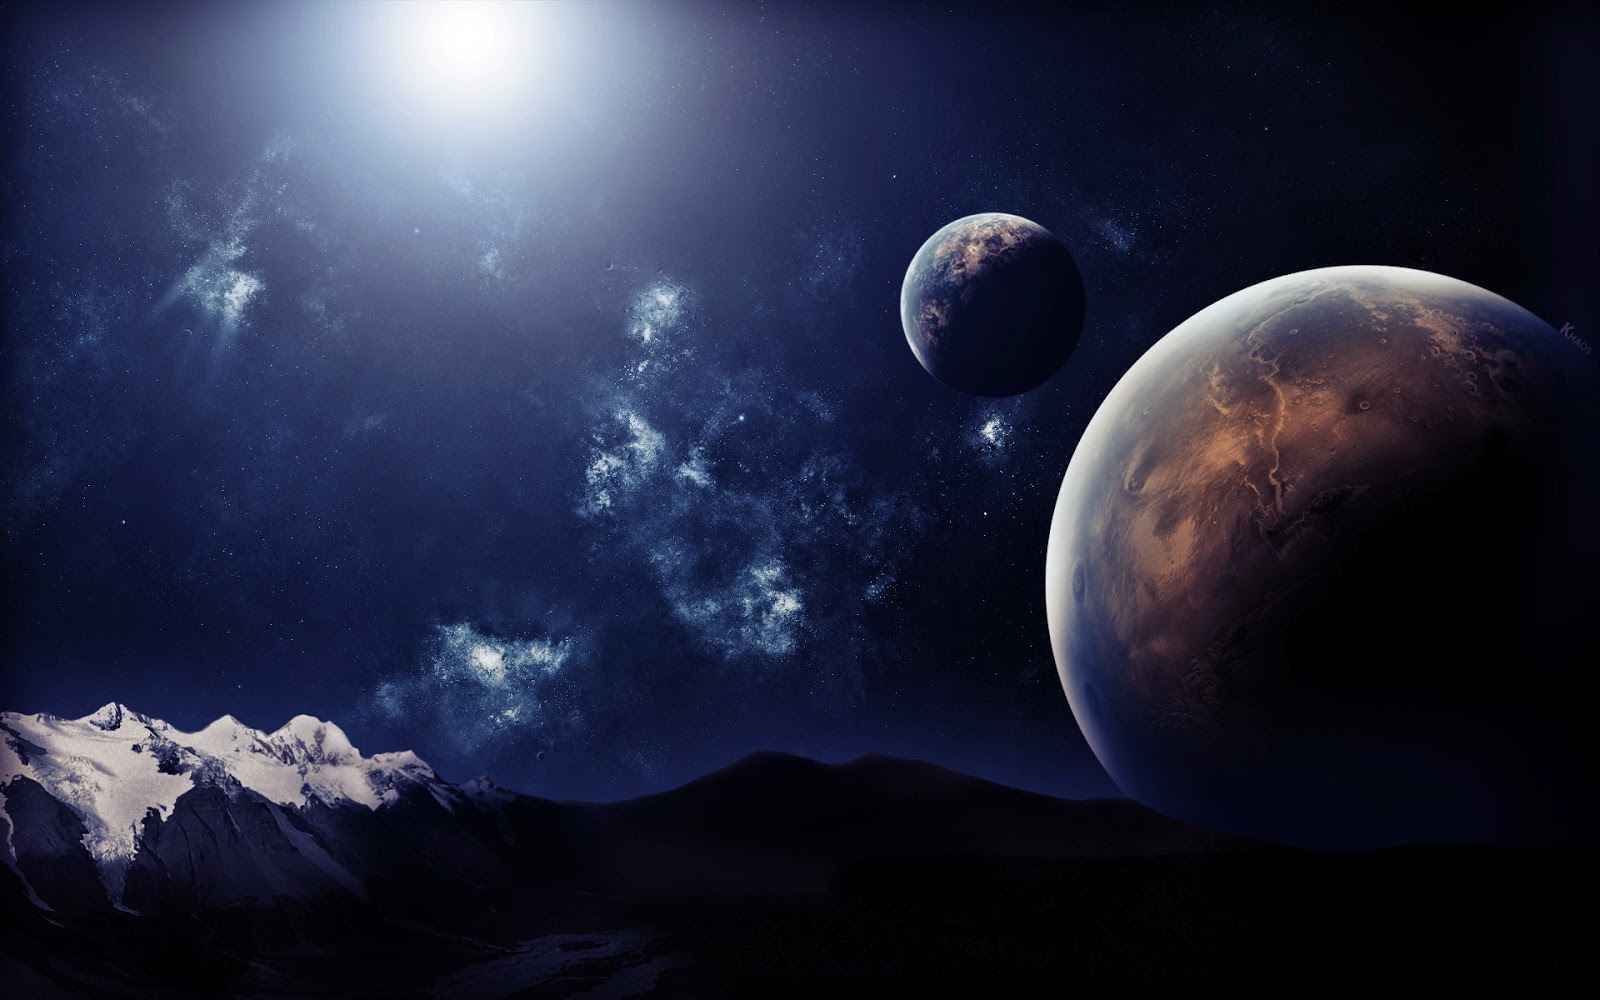 Dreamy Spaces Rendered By Muhammad Taher: 3 Amazing Dreamy Space HD Wallpapers